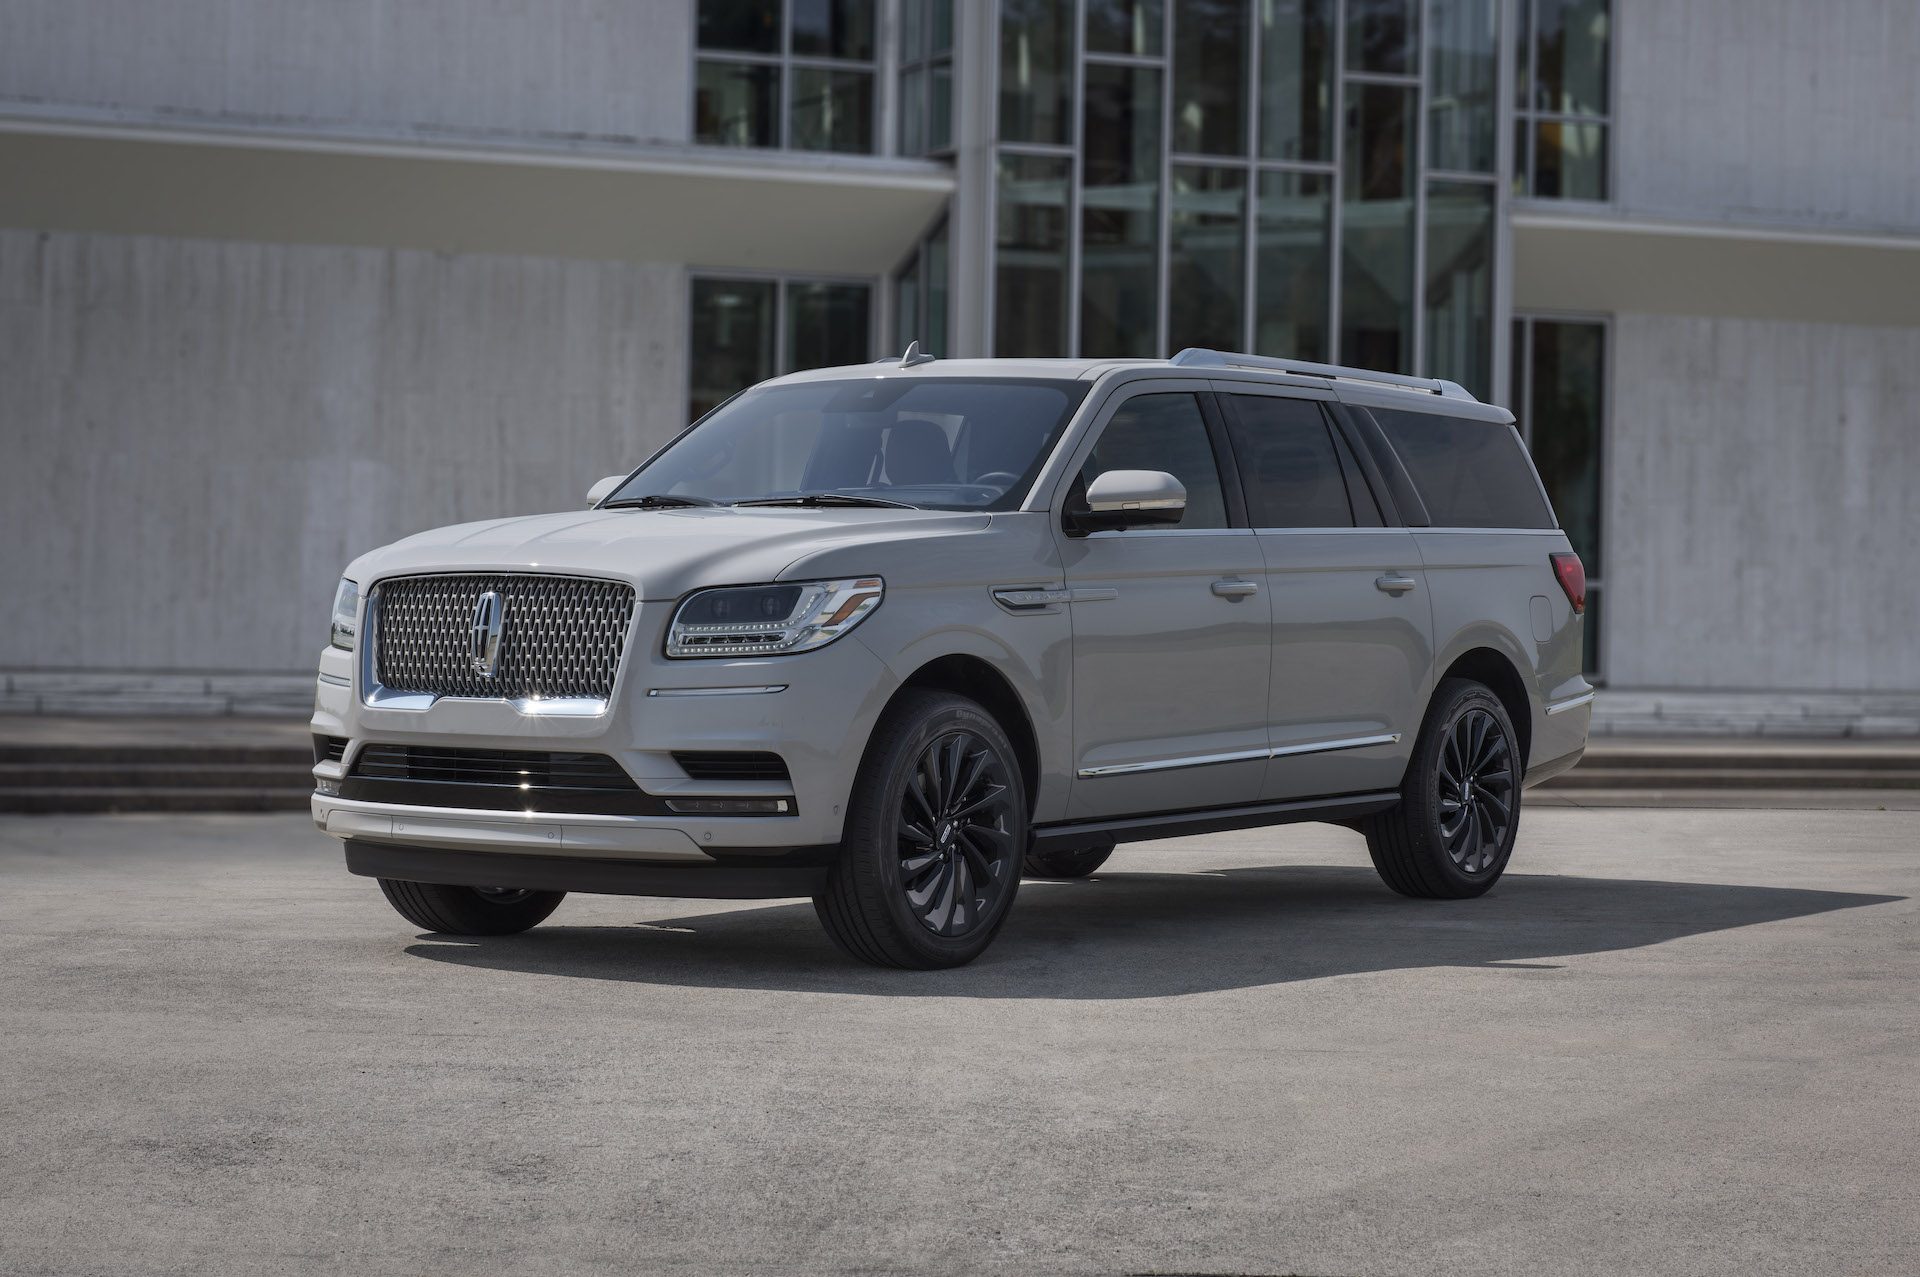 new and used lincoln navigator prices photos reviews specs the car connection new and used lincoln navigator prices photos reviews specs the car connection